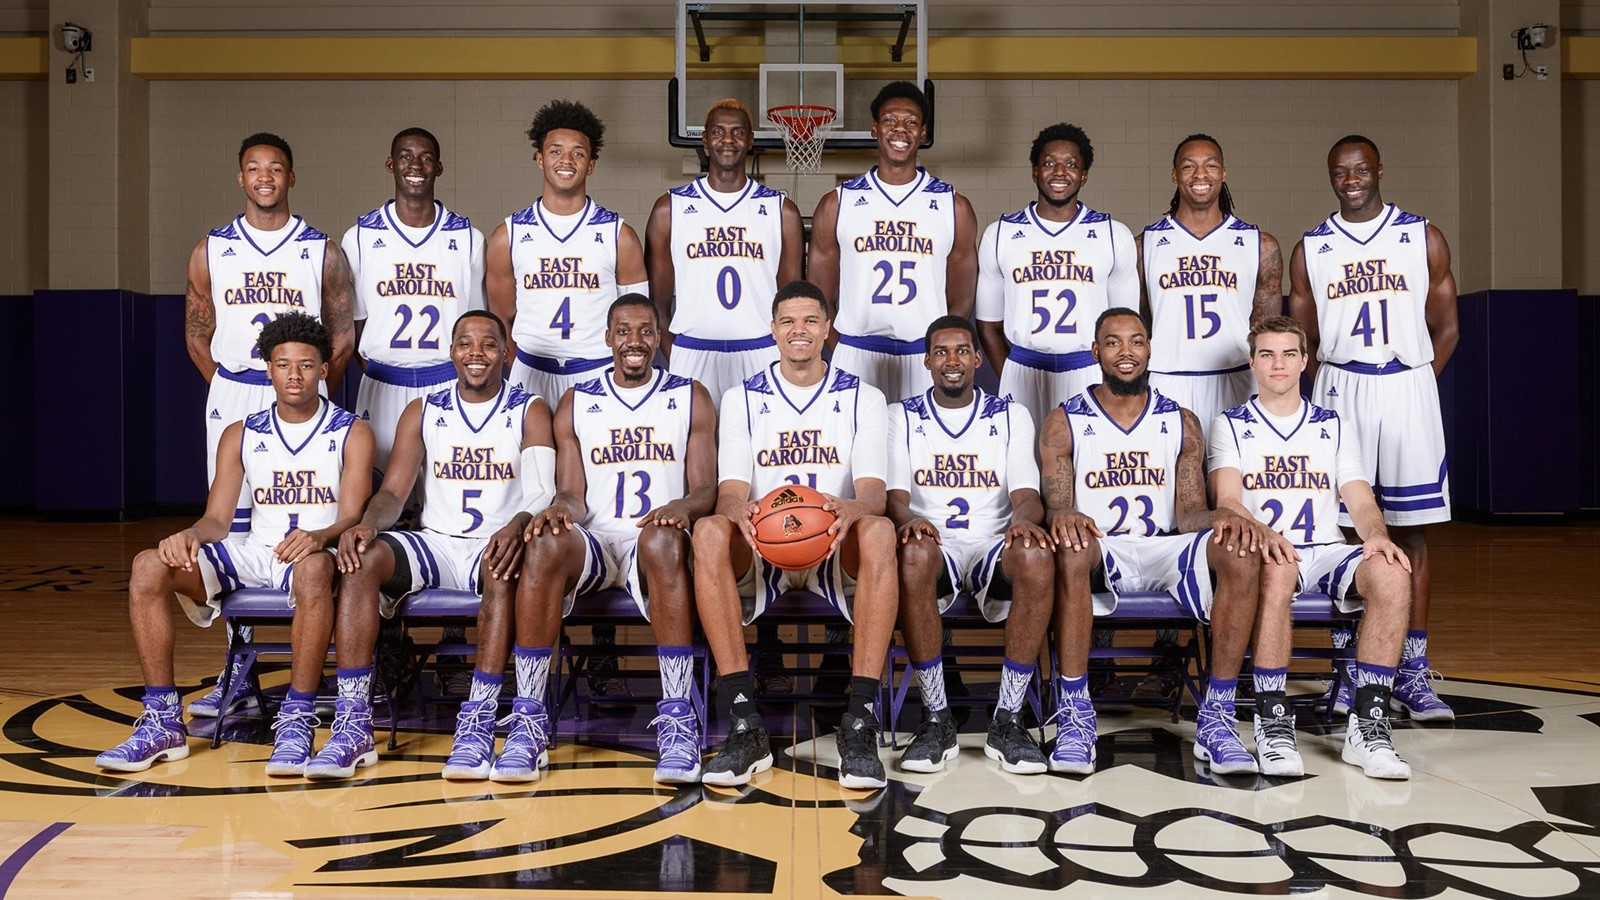 c2132241e 2016-17 Men s Basketball Roster - East Carolina University Athletics